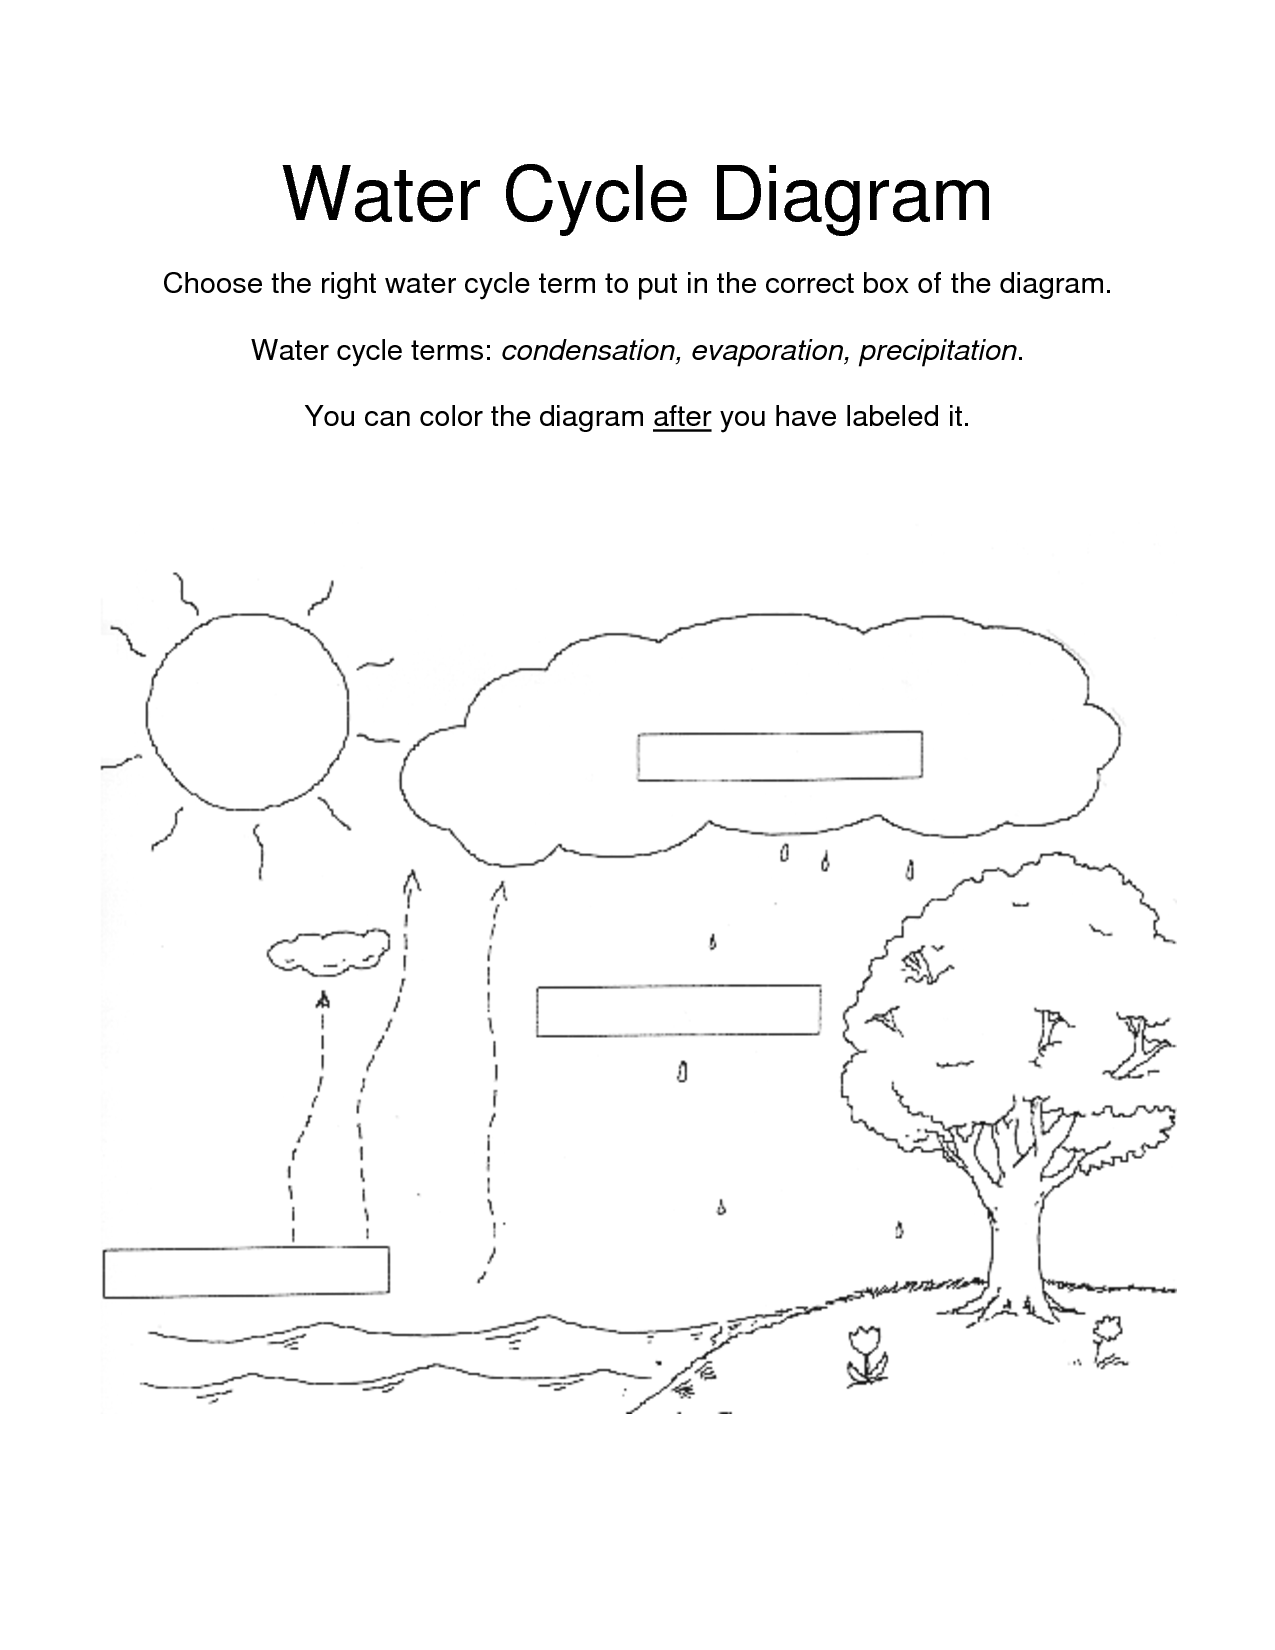 water cycle diagram worksheet blank stihl ms250 chainsaw parts for kids coloring page - home